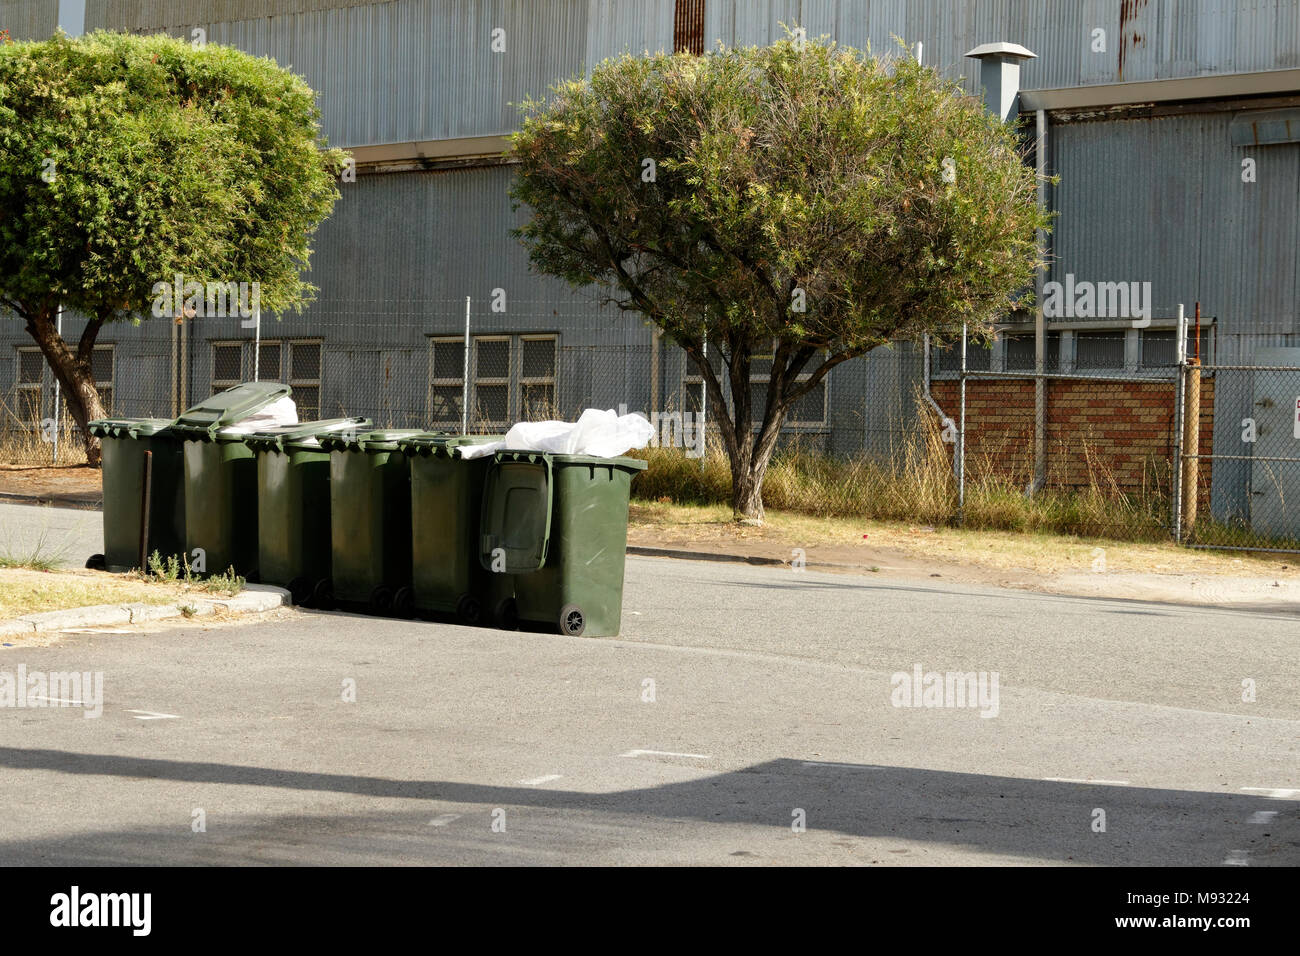 Wheelie rubbish bins on side of road, Perth, Western Australia - Stock Image